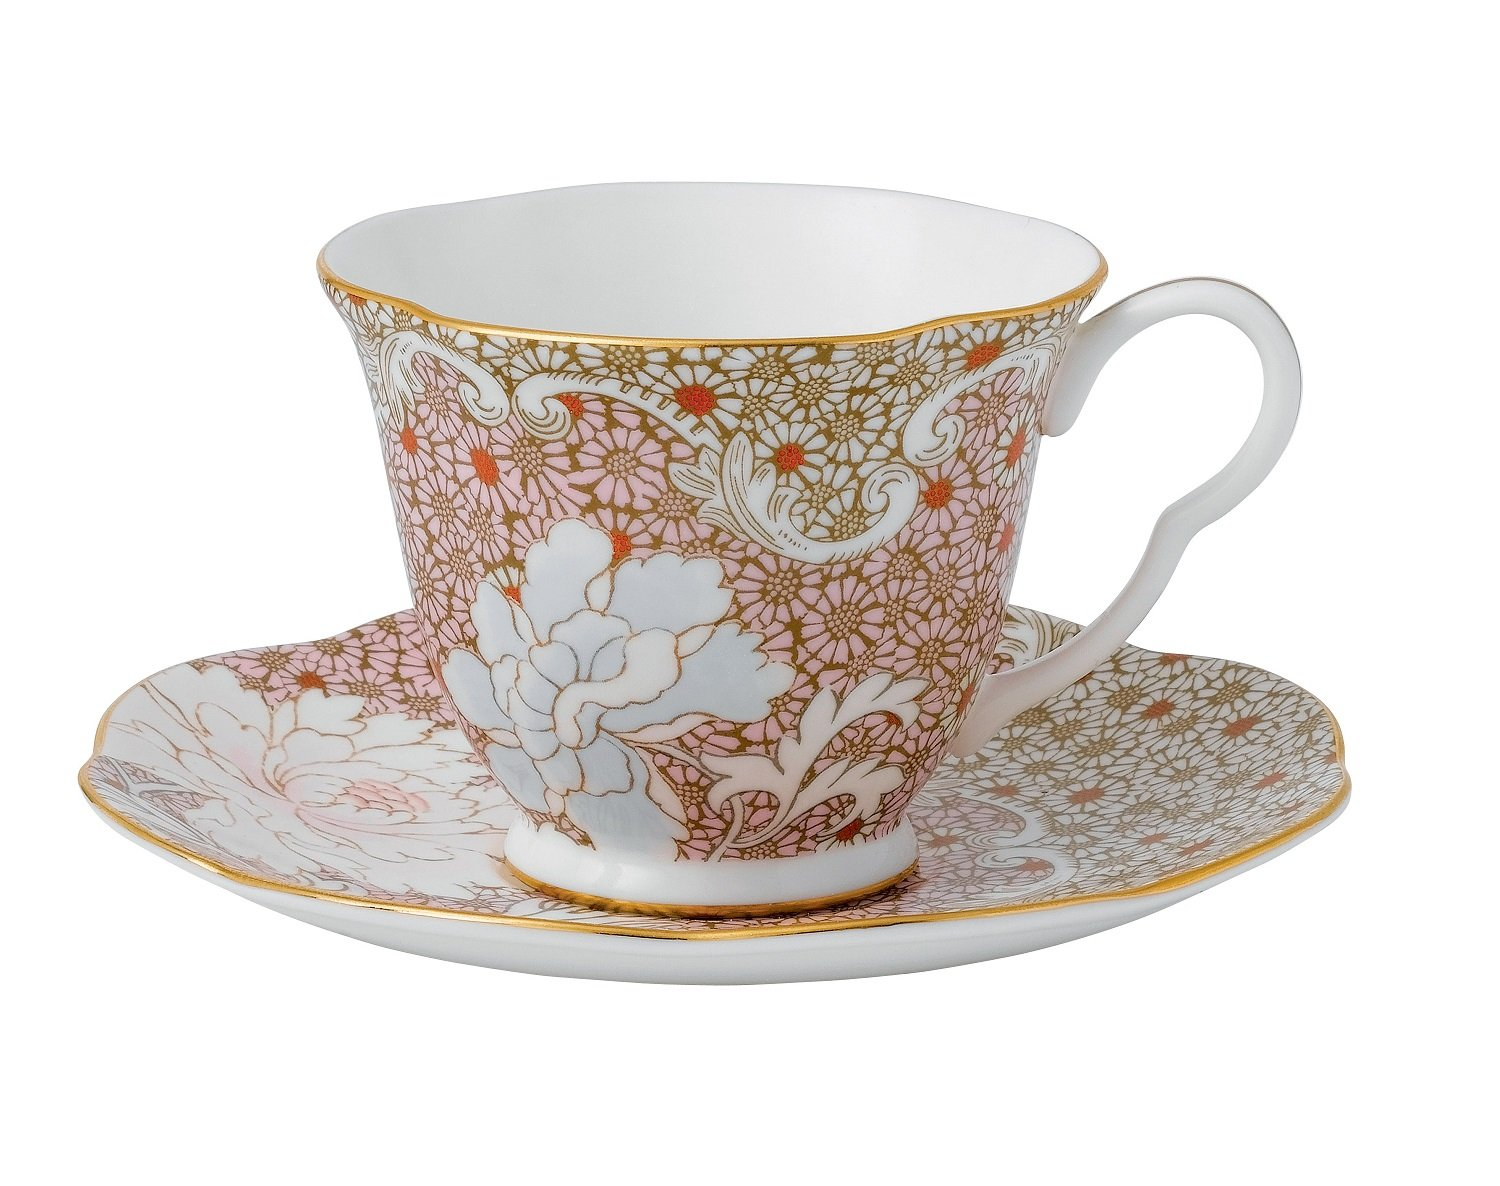 Wedgwood Daisy Tea Story Teacup and Saucer Set, Pink 40000781